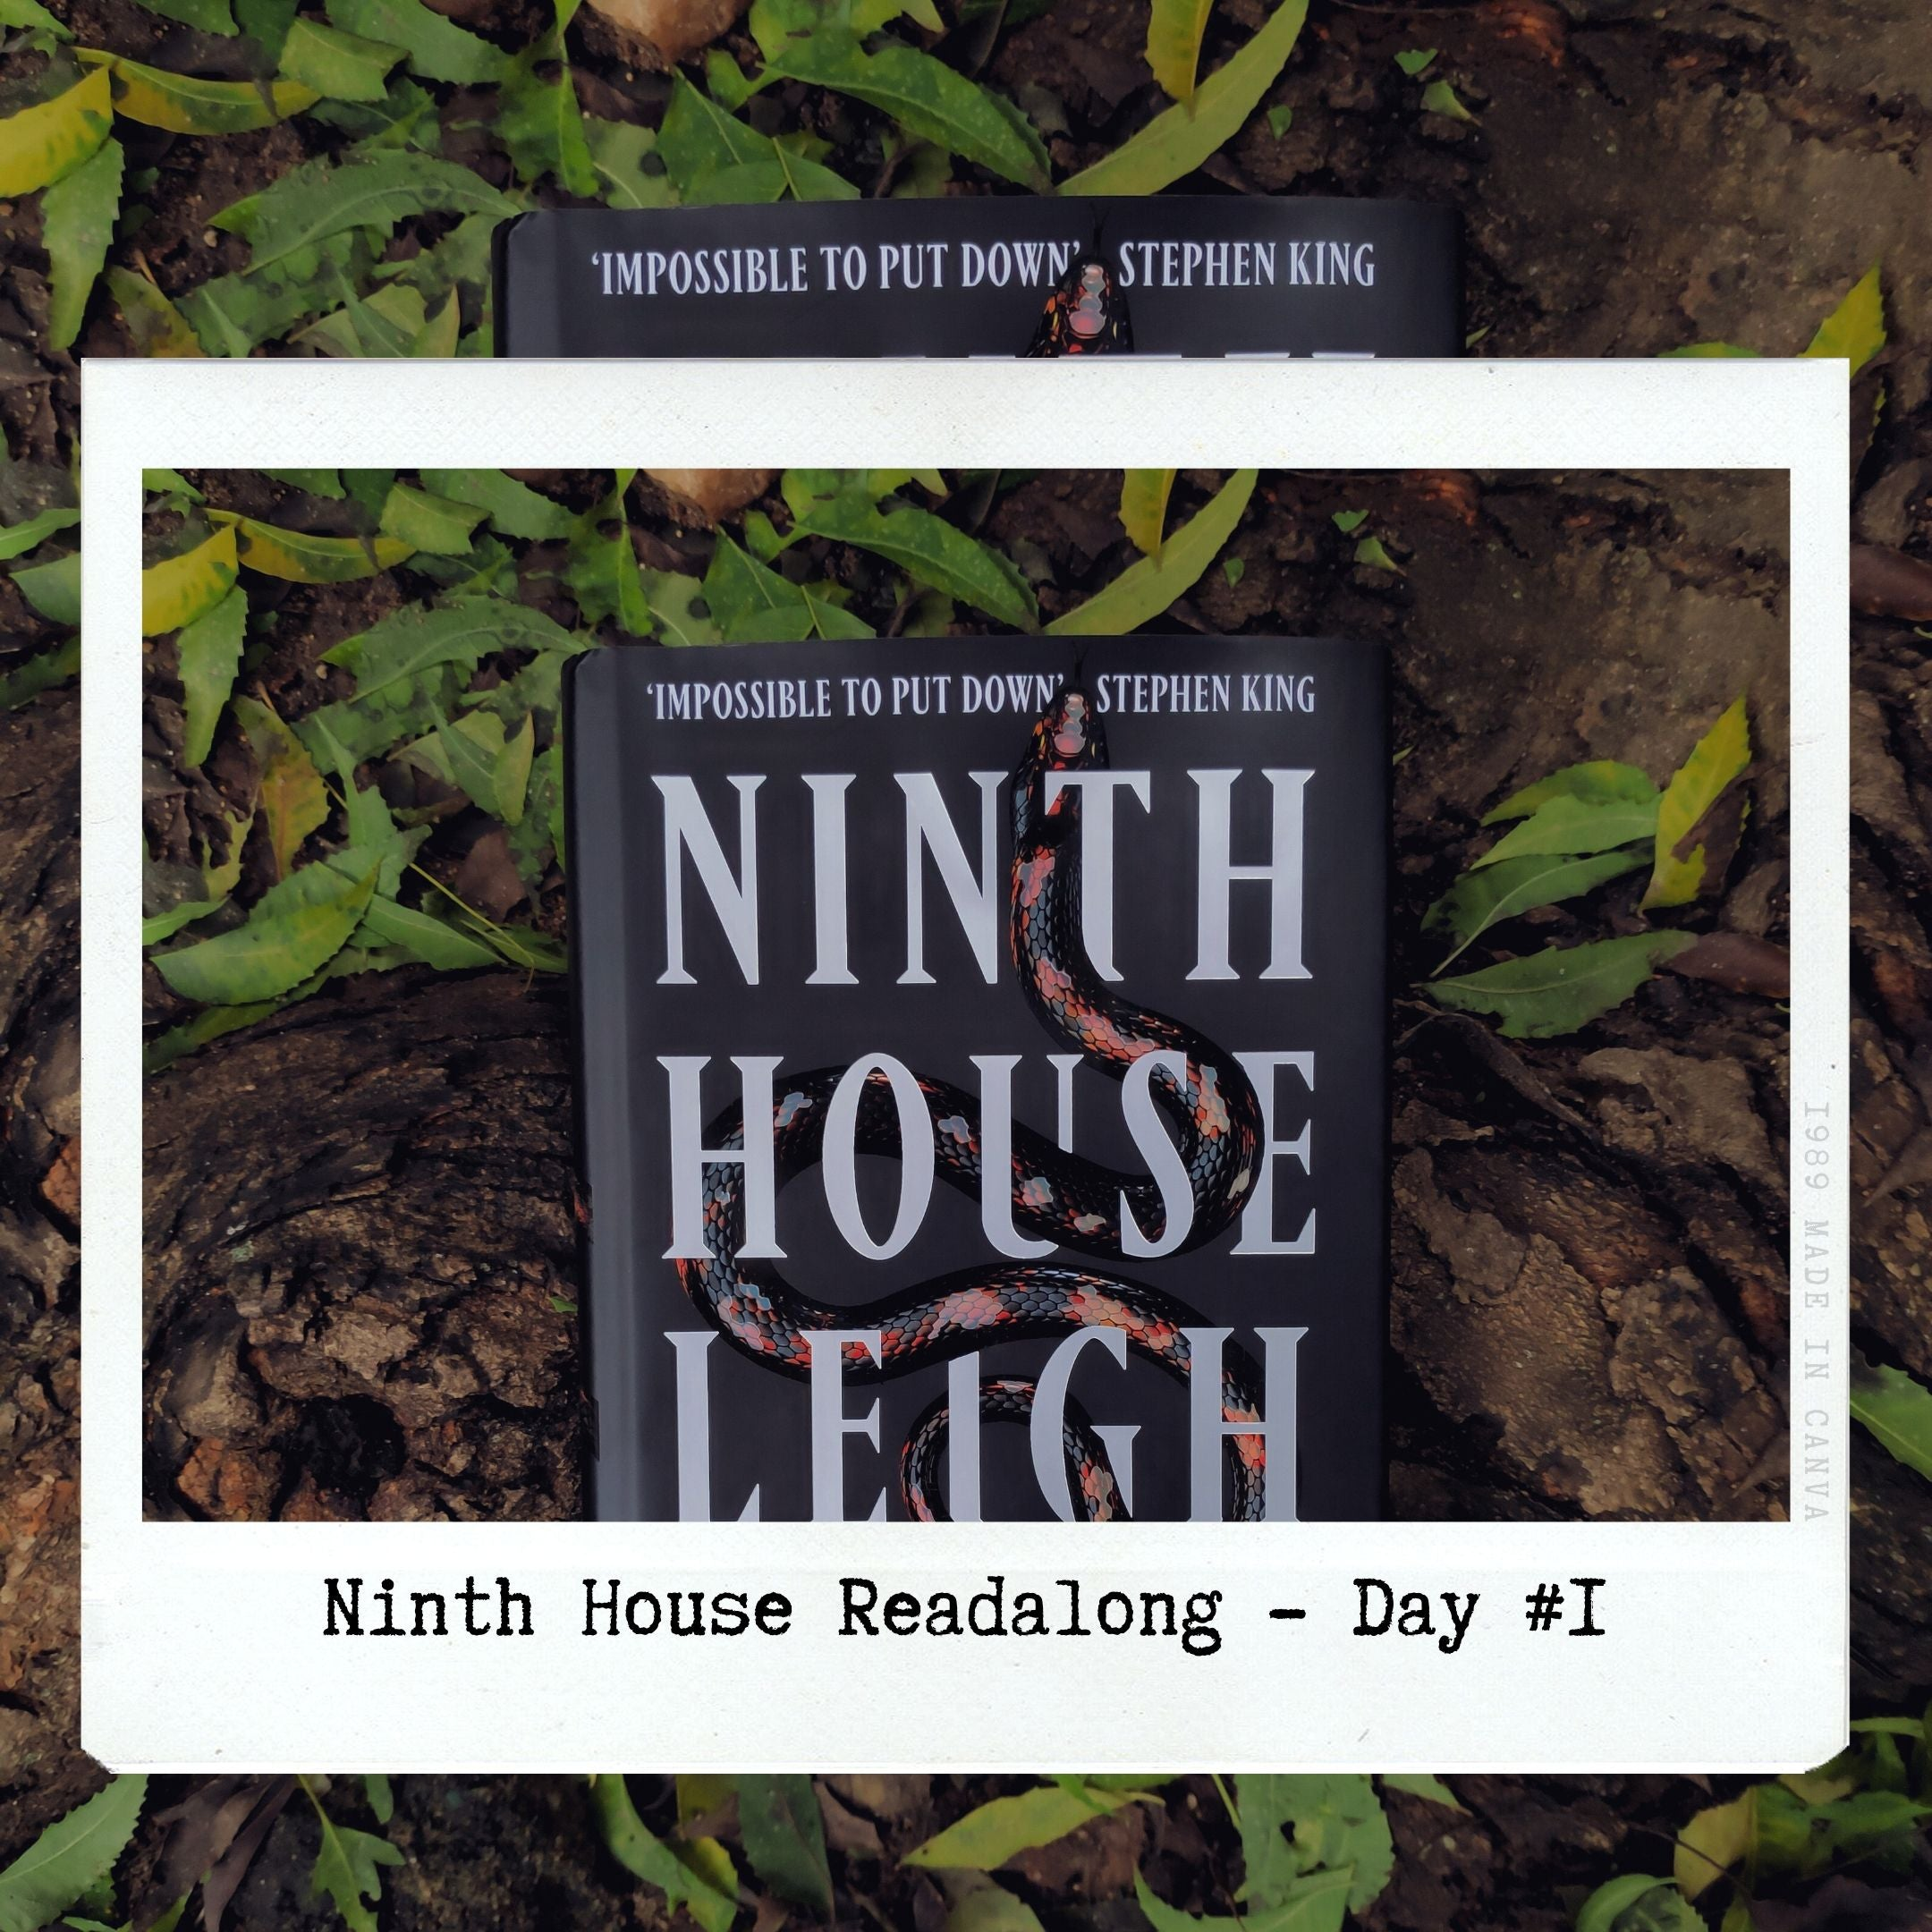 Ninth House Readalong - Day #1